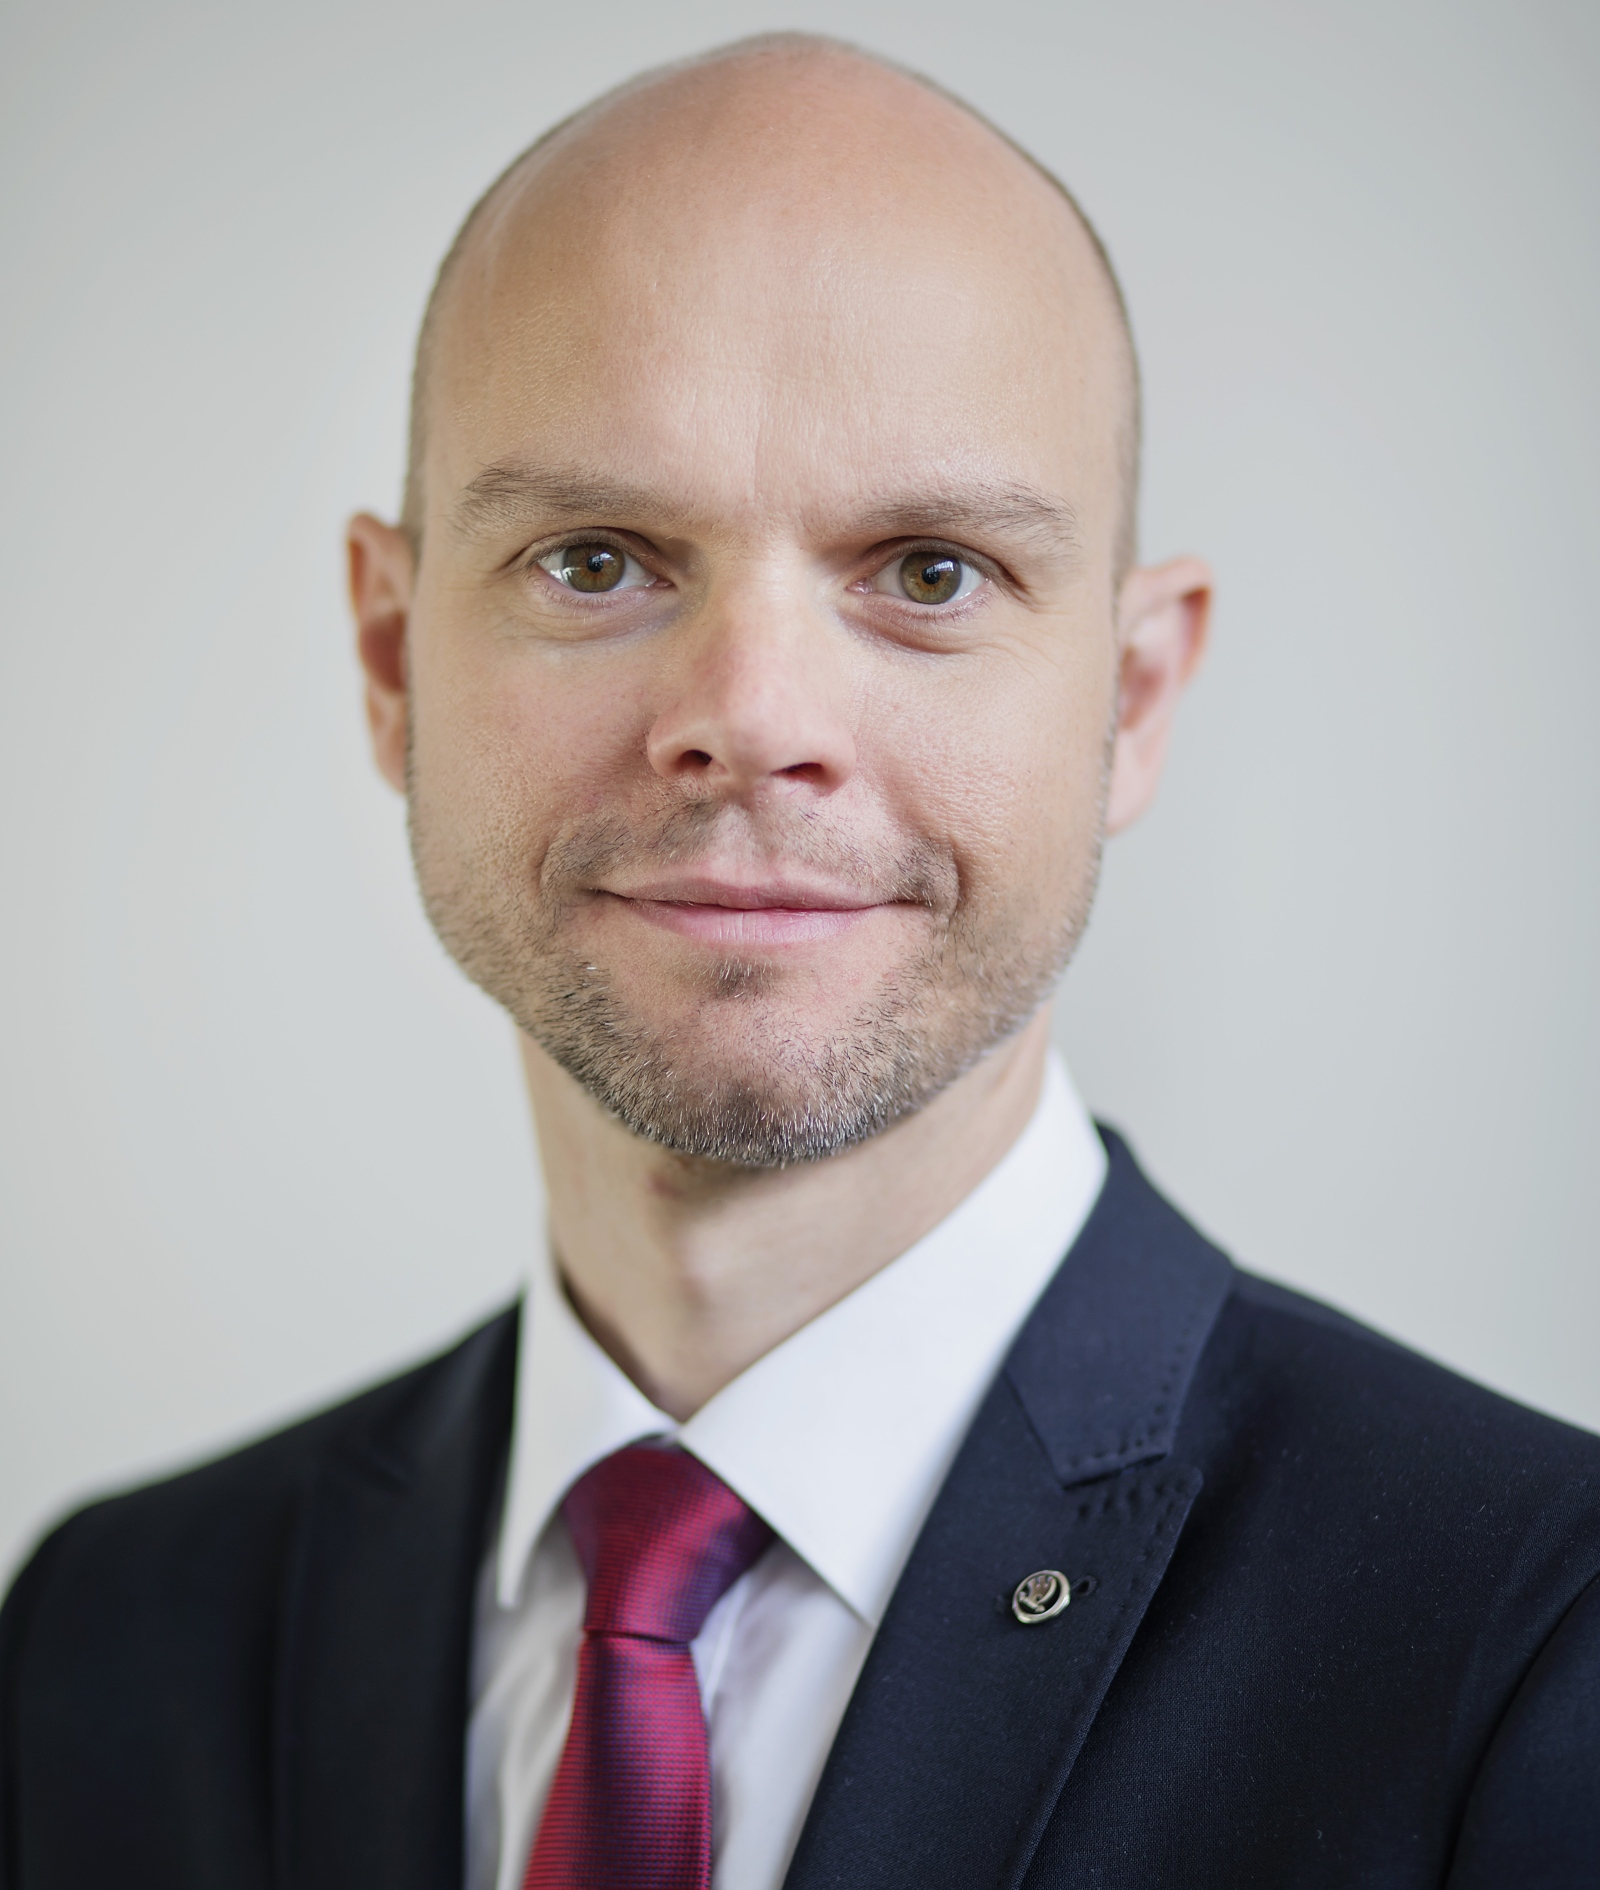 Marc-Andreas Brinkmann is ŠKODA AUTO's new Head of Marketing